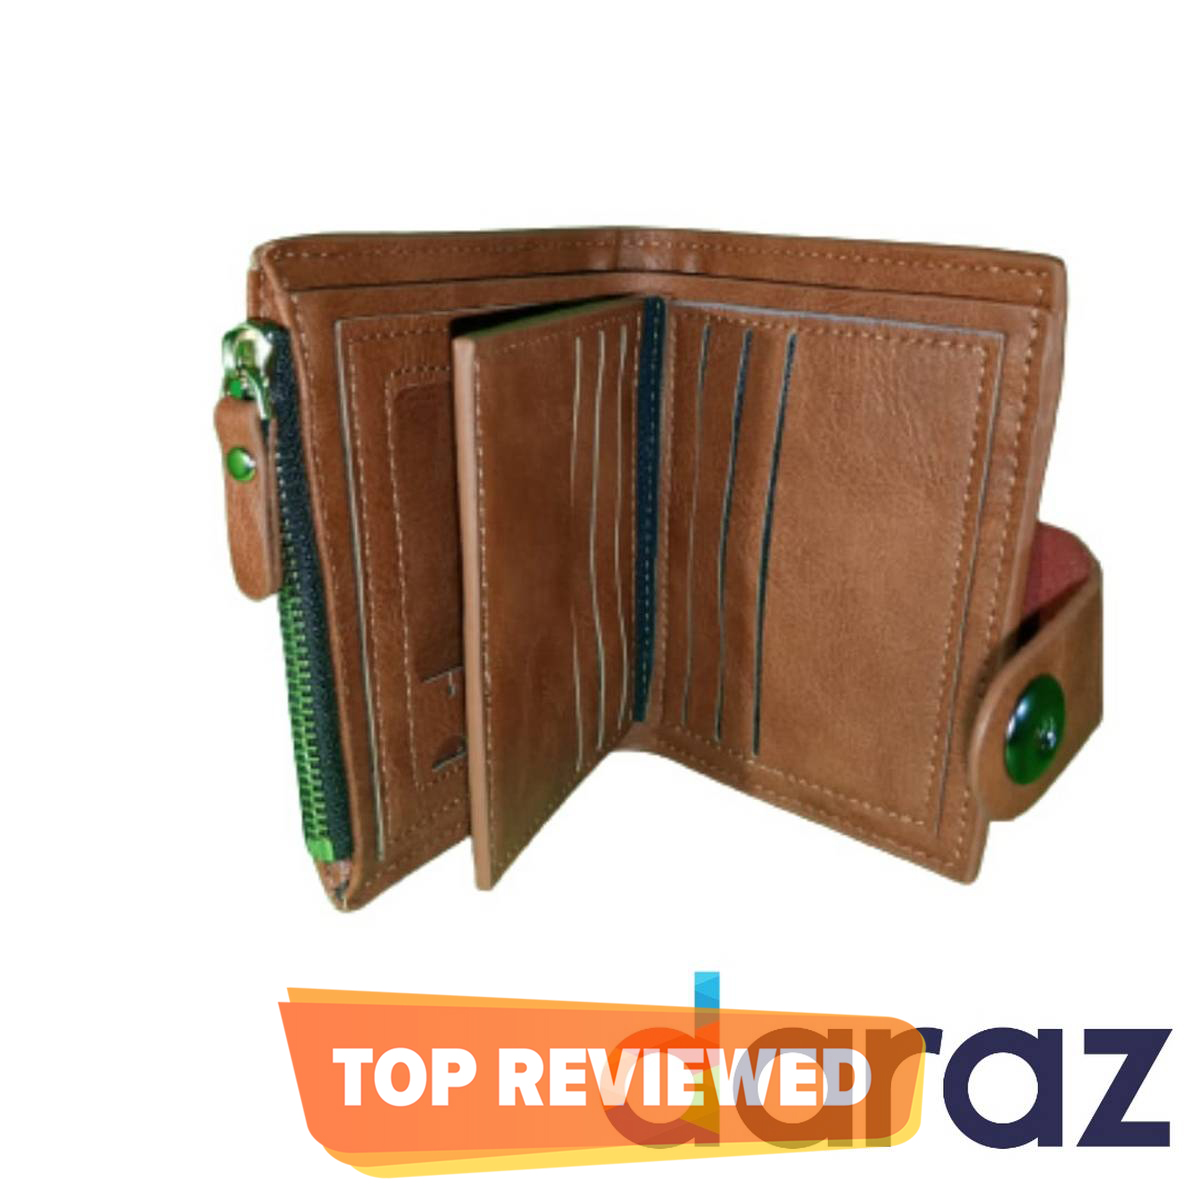 PU Soft Leather Wallet for Men (High Quality) – Pocket Friendly - Multi Purpose Pockets– Card Holder Pockets – Stylish Wallet for Men Original Leather